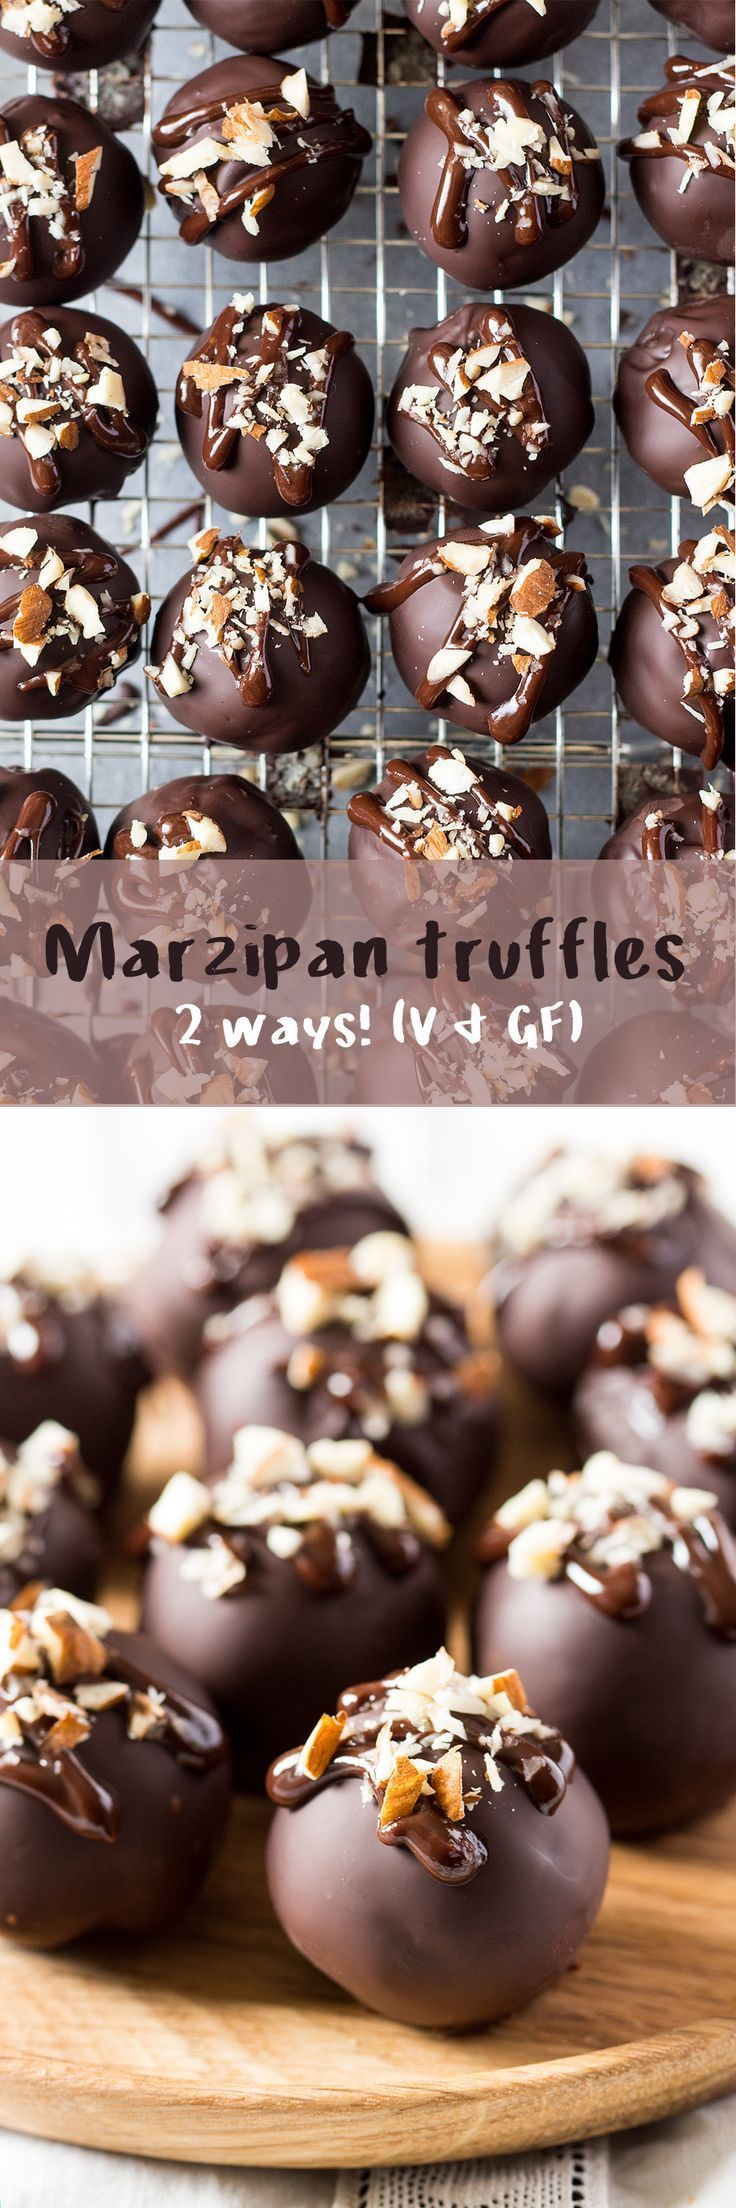 marzipan truffles – 2 ways These are to make and come in two varieties, including refinedsugarfree one. They're naturally vegan and glutenfree too!These are to make and come in two varieties, including refinedsugarfree one. They're naturally vegan and glutenfree too!